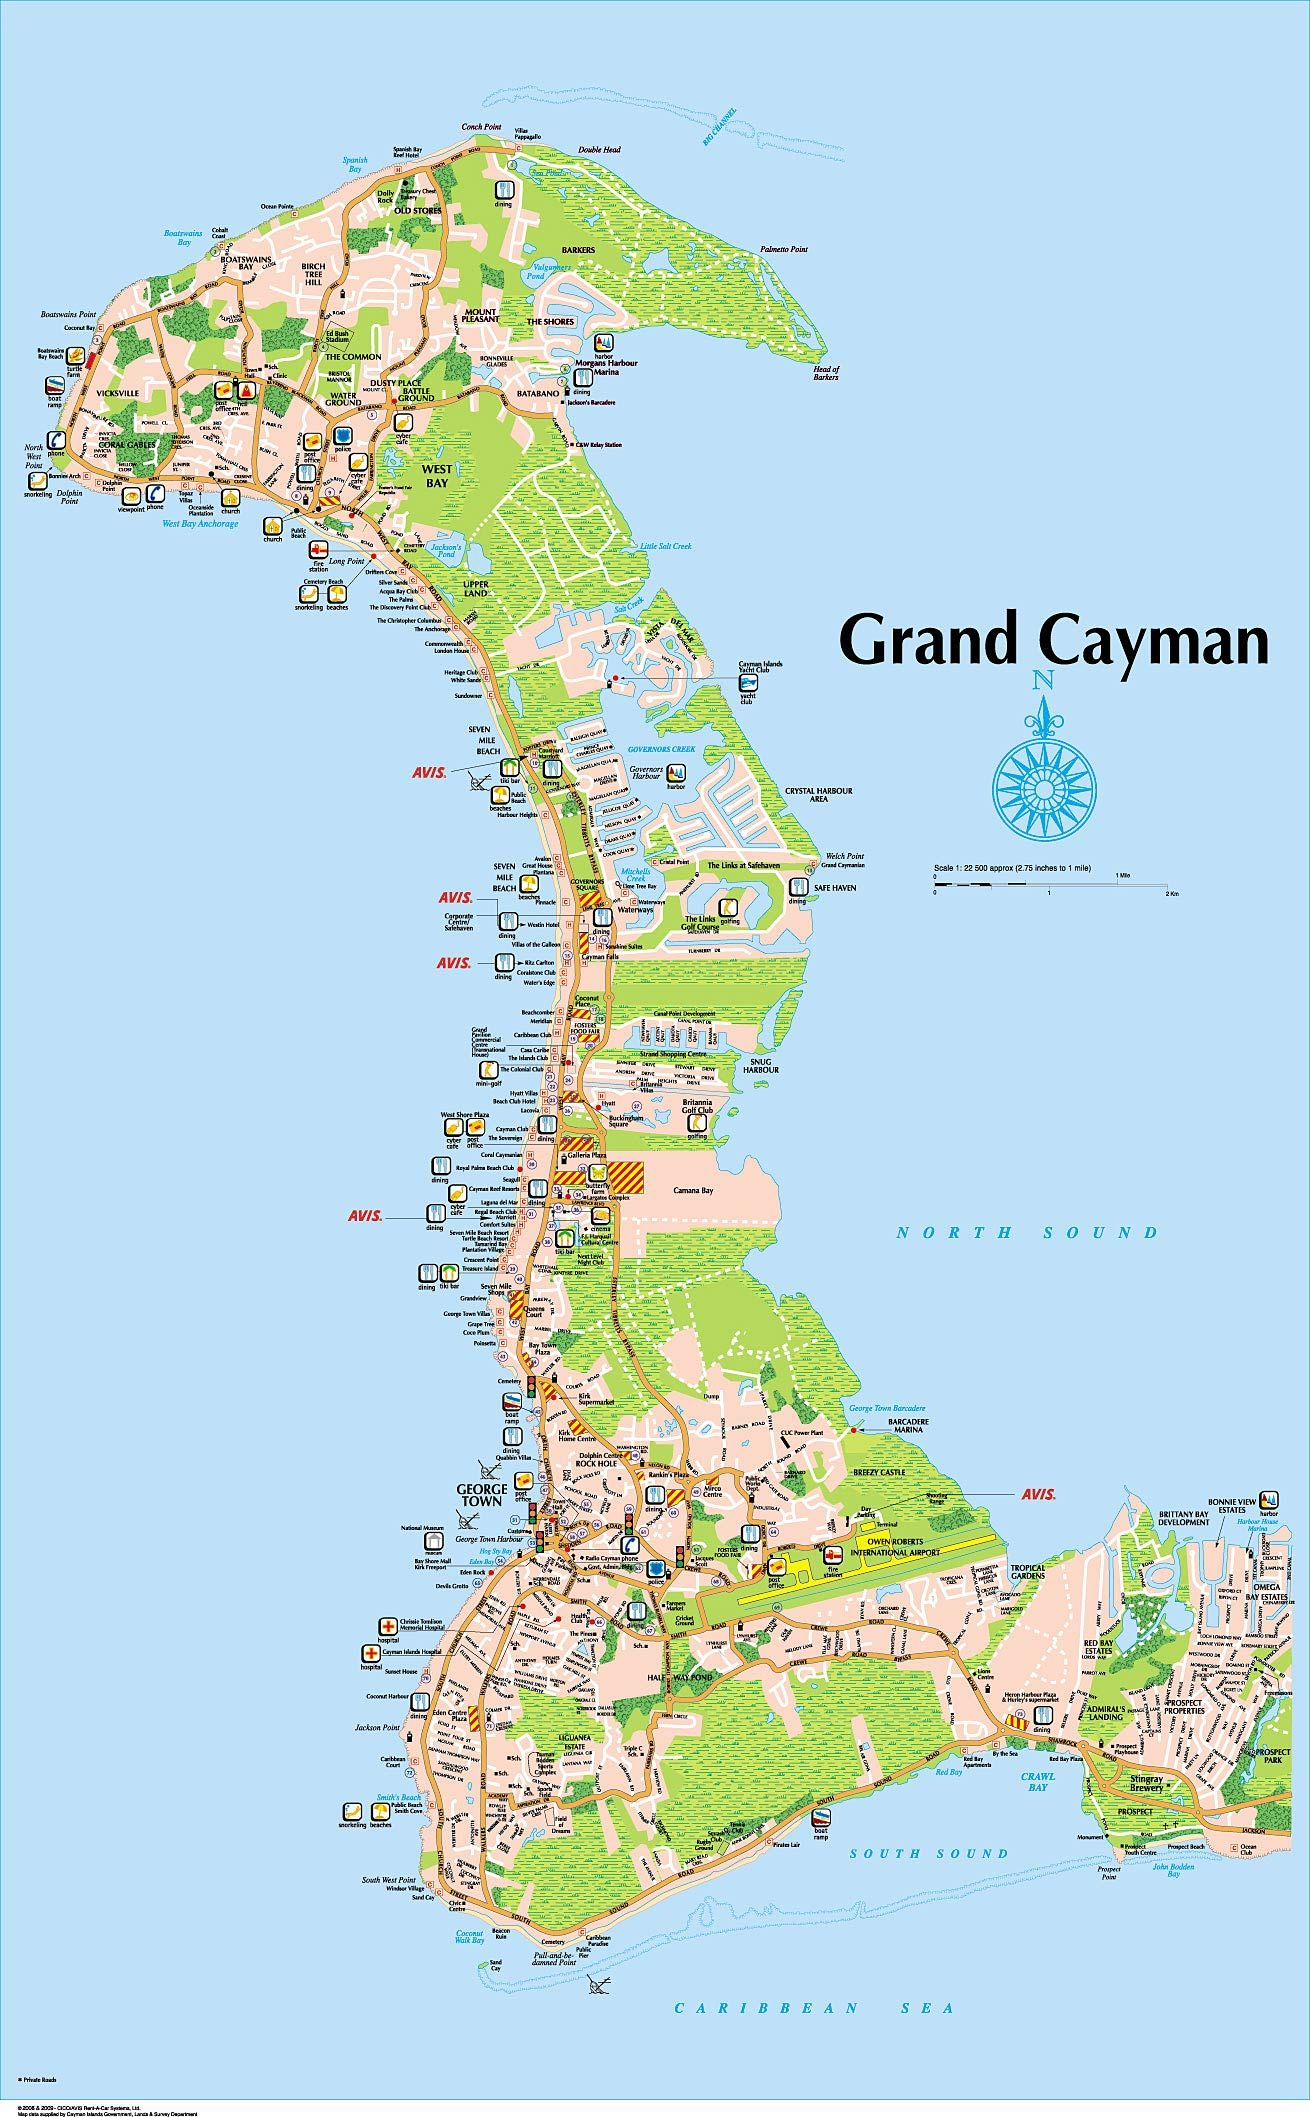 turtle farms in the usa, turtle farm grand cayman weddings, turtle farm isla mujeres, turtle island before columbus, turtle farm cayman islands, turtle reef grand cayman, turtle tank in grand cayman, cayman islands map, turtle underwater map, on grand cayman map turtle farm to palms